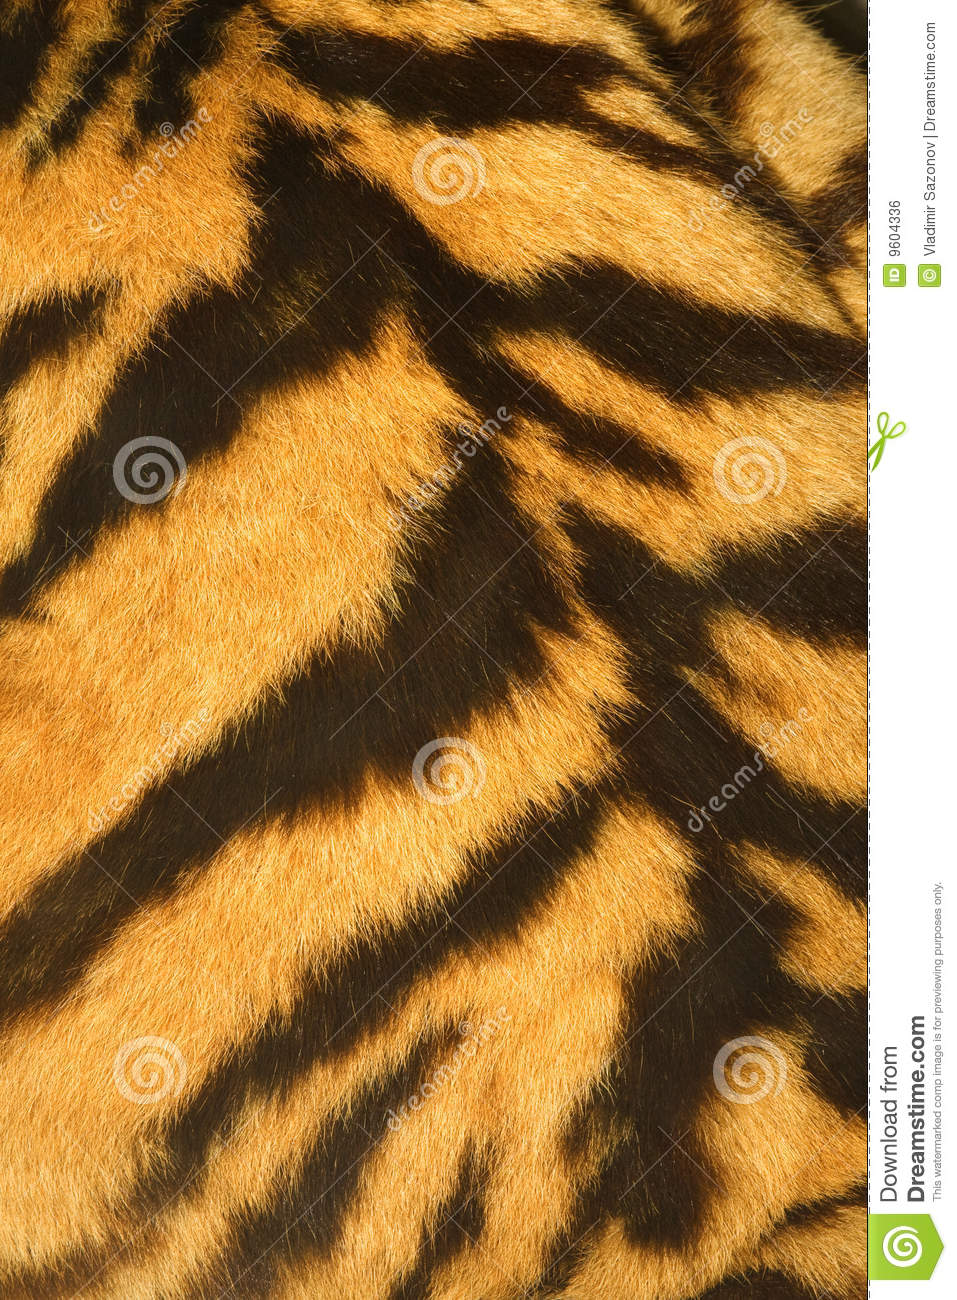 Tiger Fur Texture Real Stock Photo Image Of Furry